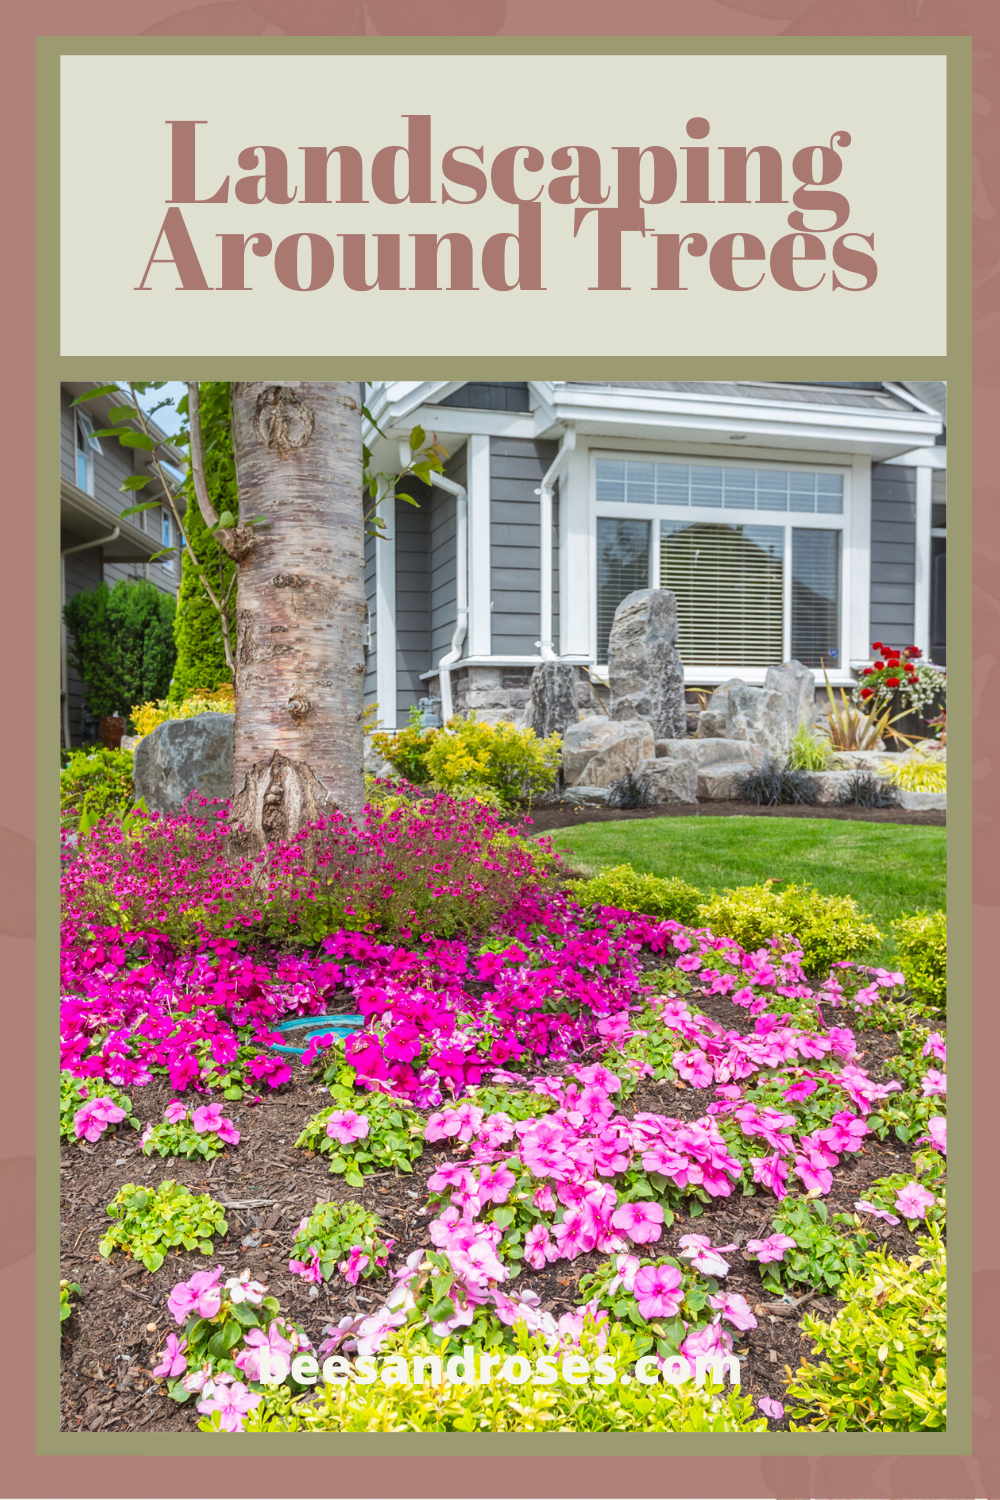 One of the easiest ways to upgrade the look of your yard is to landscape around trees. Most don't do it, but it is easy and makes a huge difference in how things look. Read on for more info and ideas. You will be able to quickly and easily make a huge improvement to your yard. #landscapingaroundtrees #landscapeideas #flowersaroundtrees #beesandrosesblog